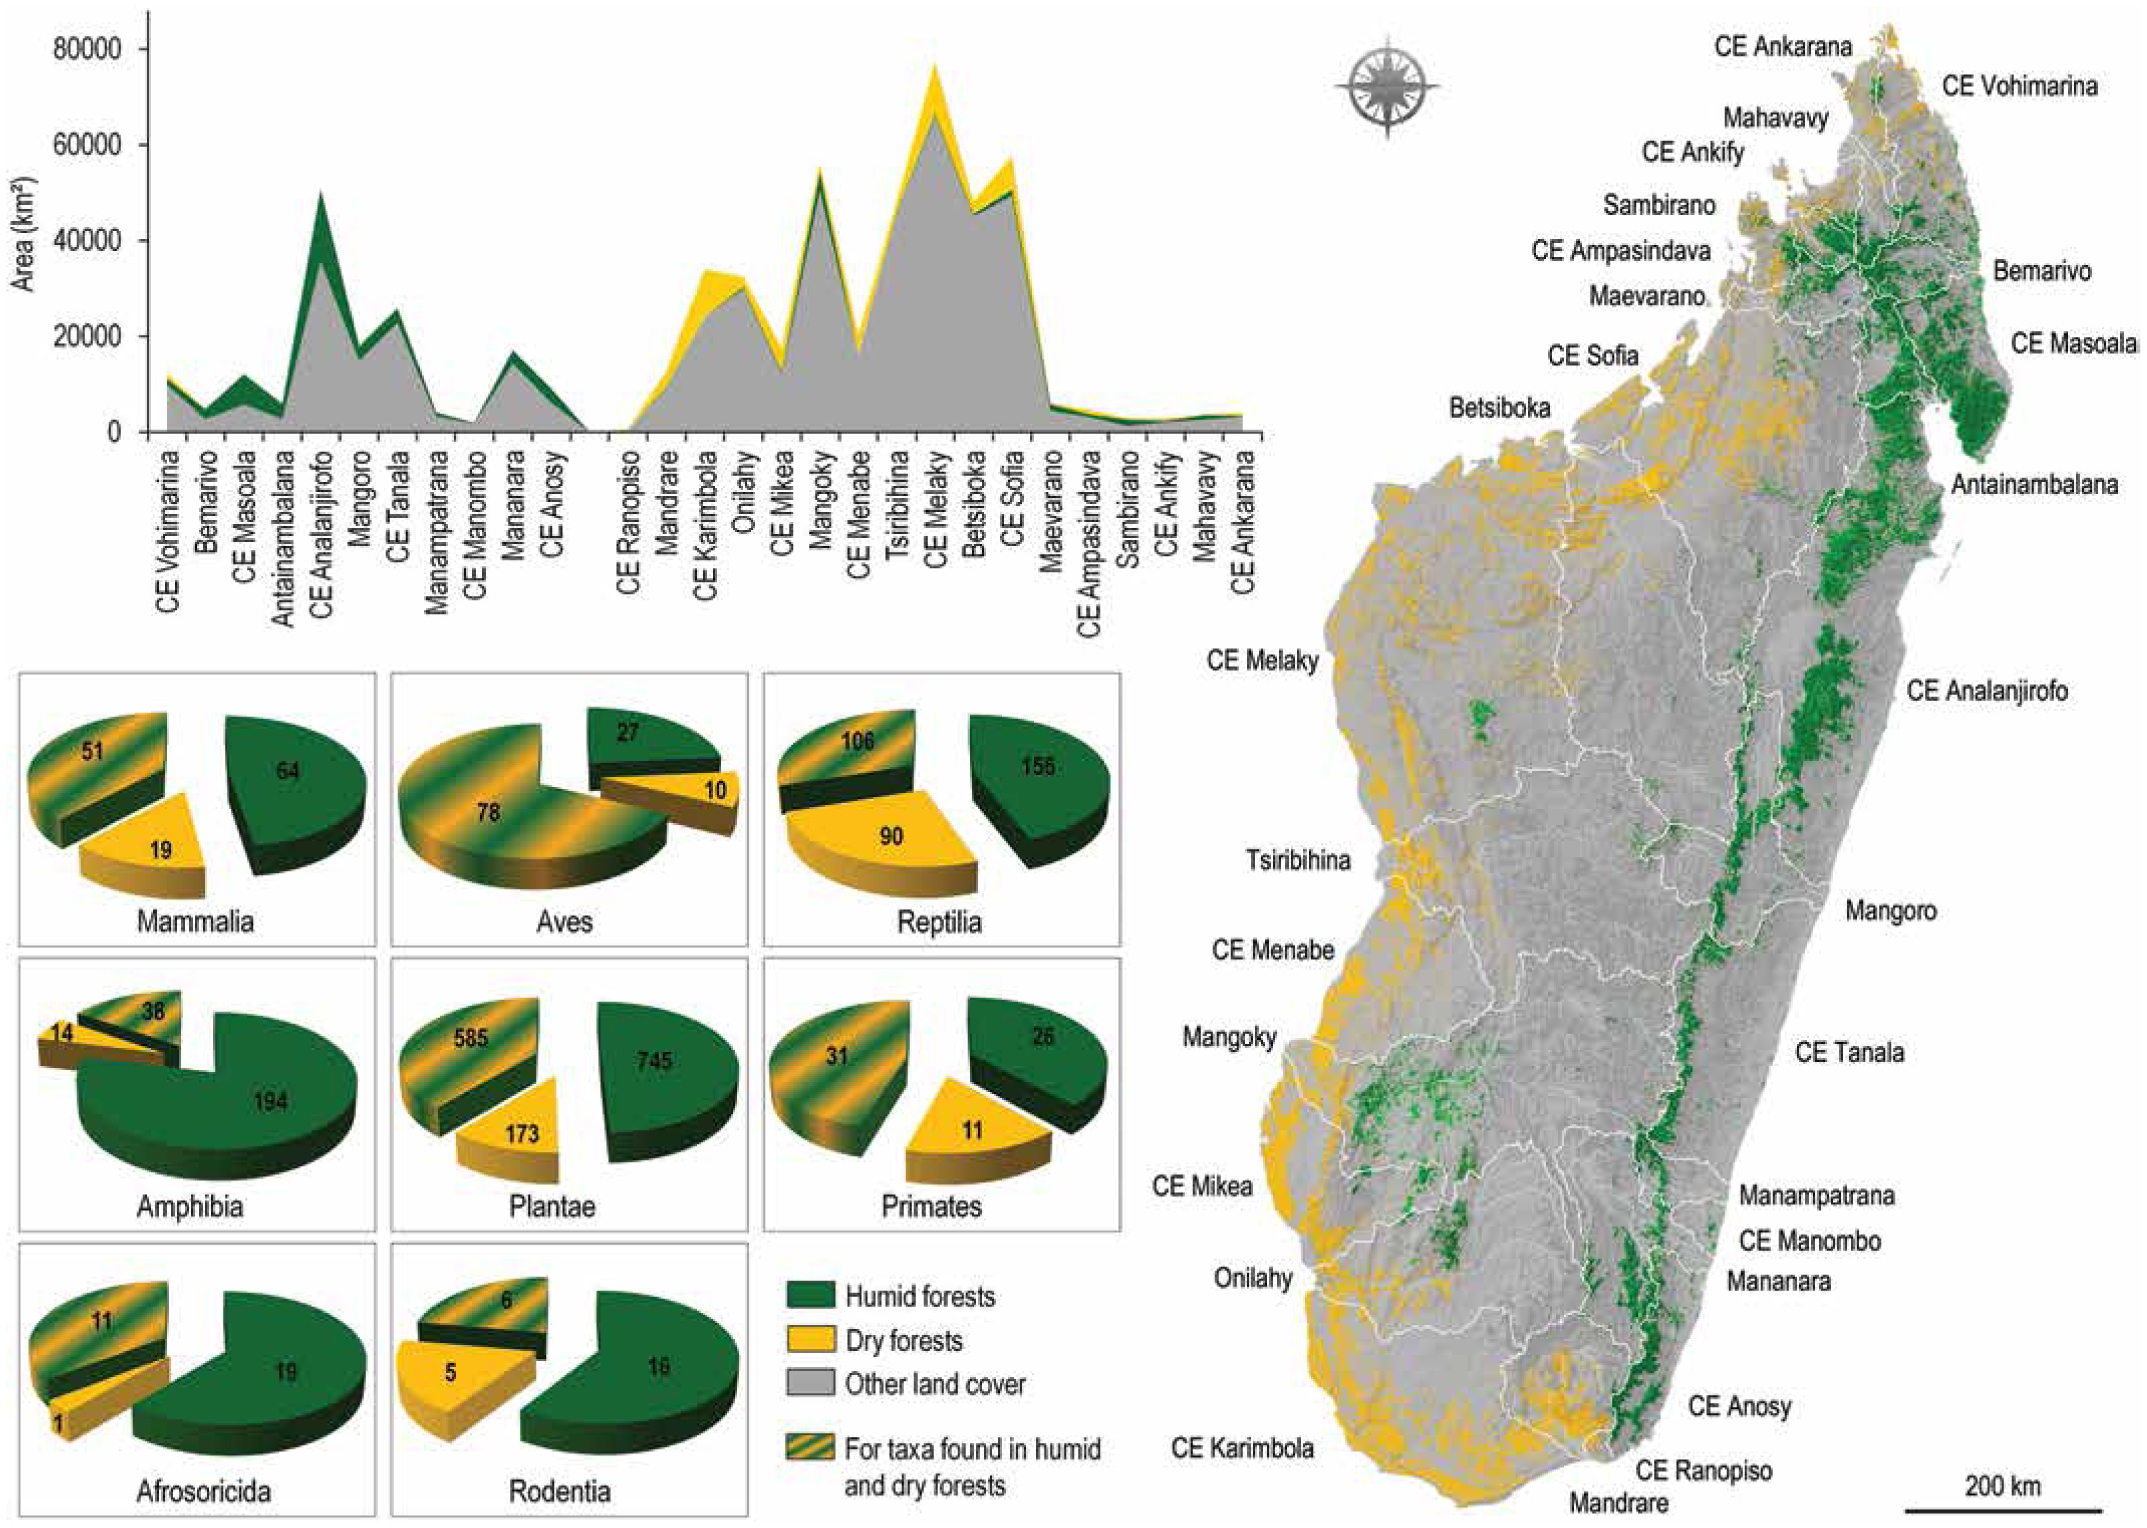 Carte Sig Madagascar.Dry Forests In Madagascar Neglected And Under Pressure